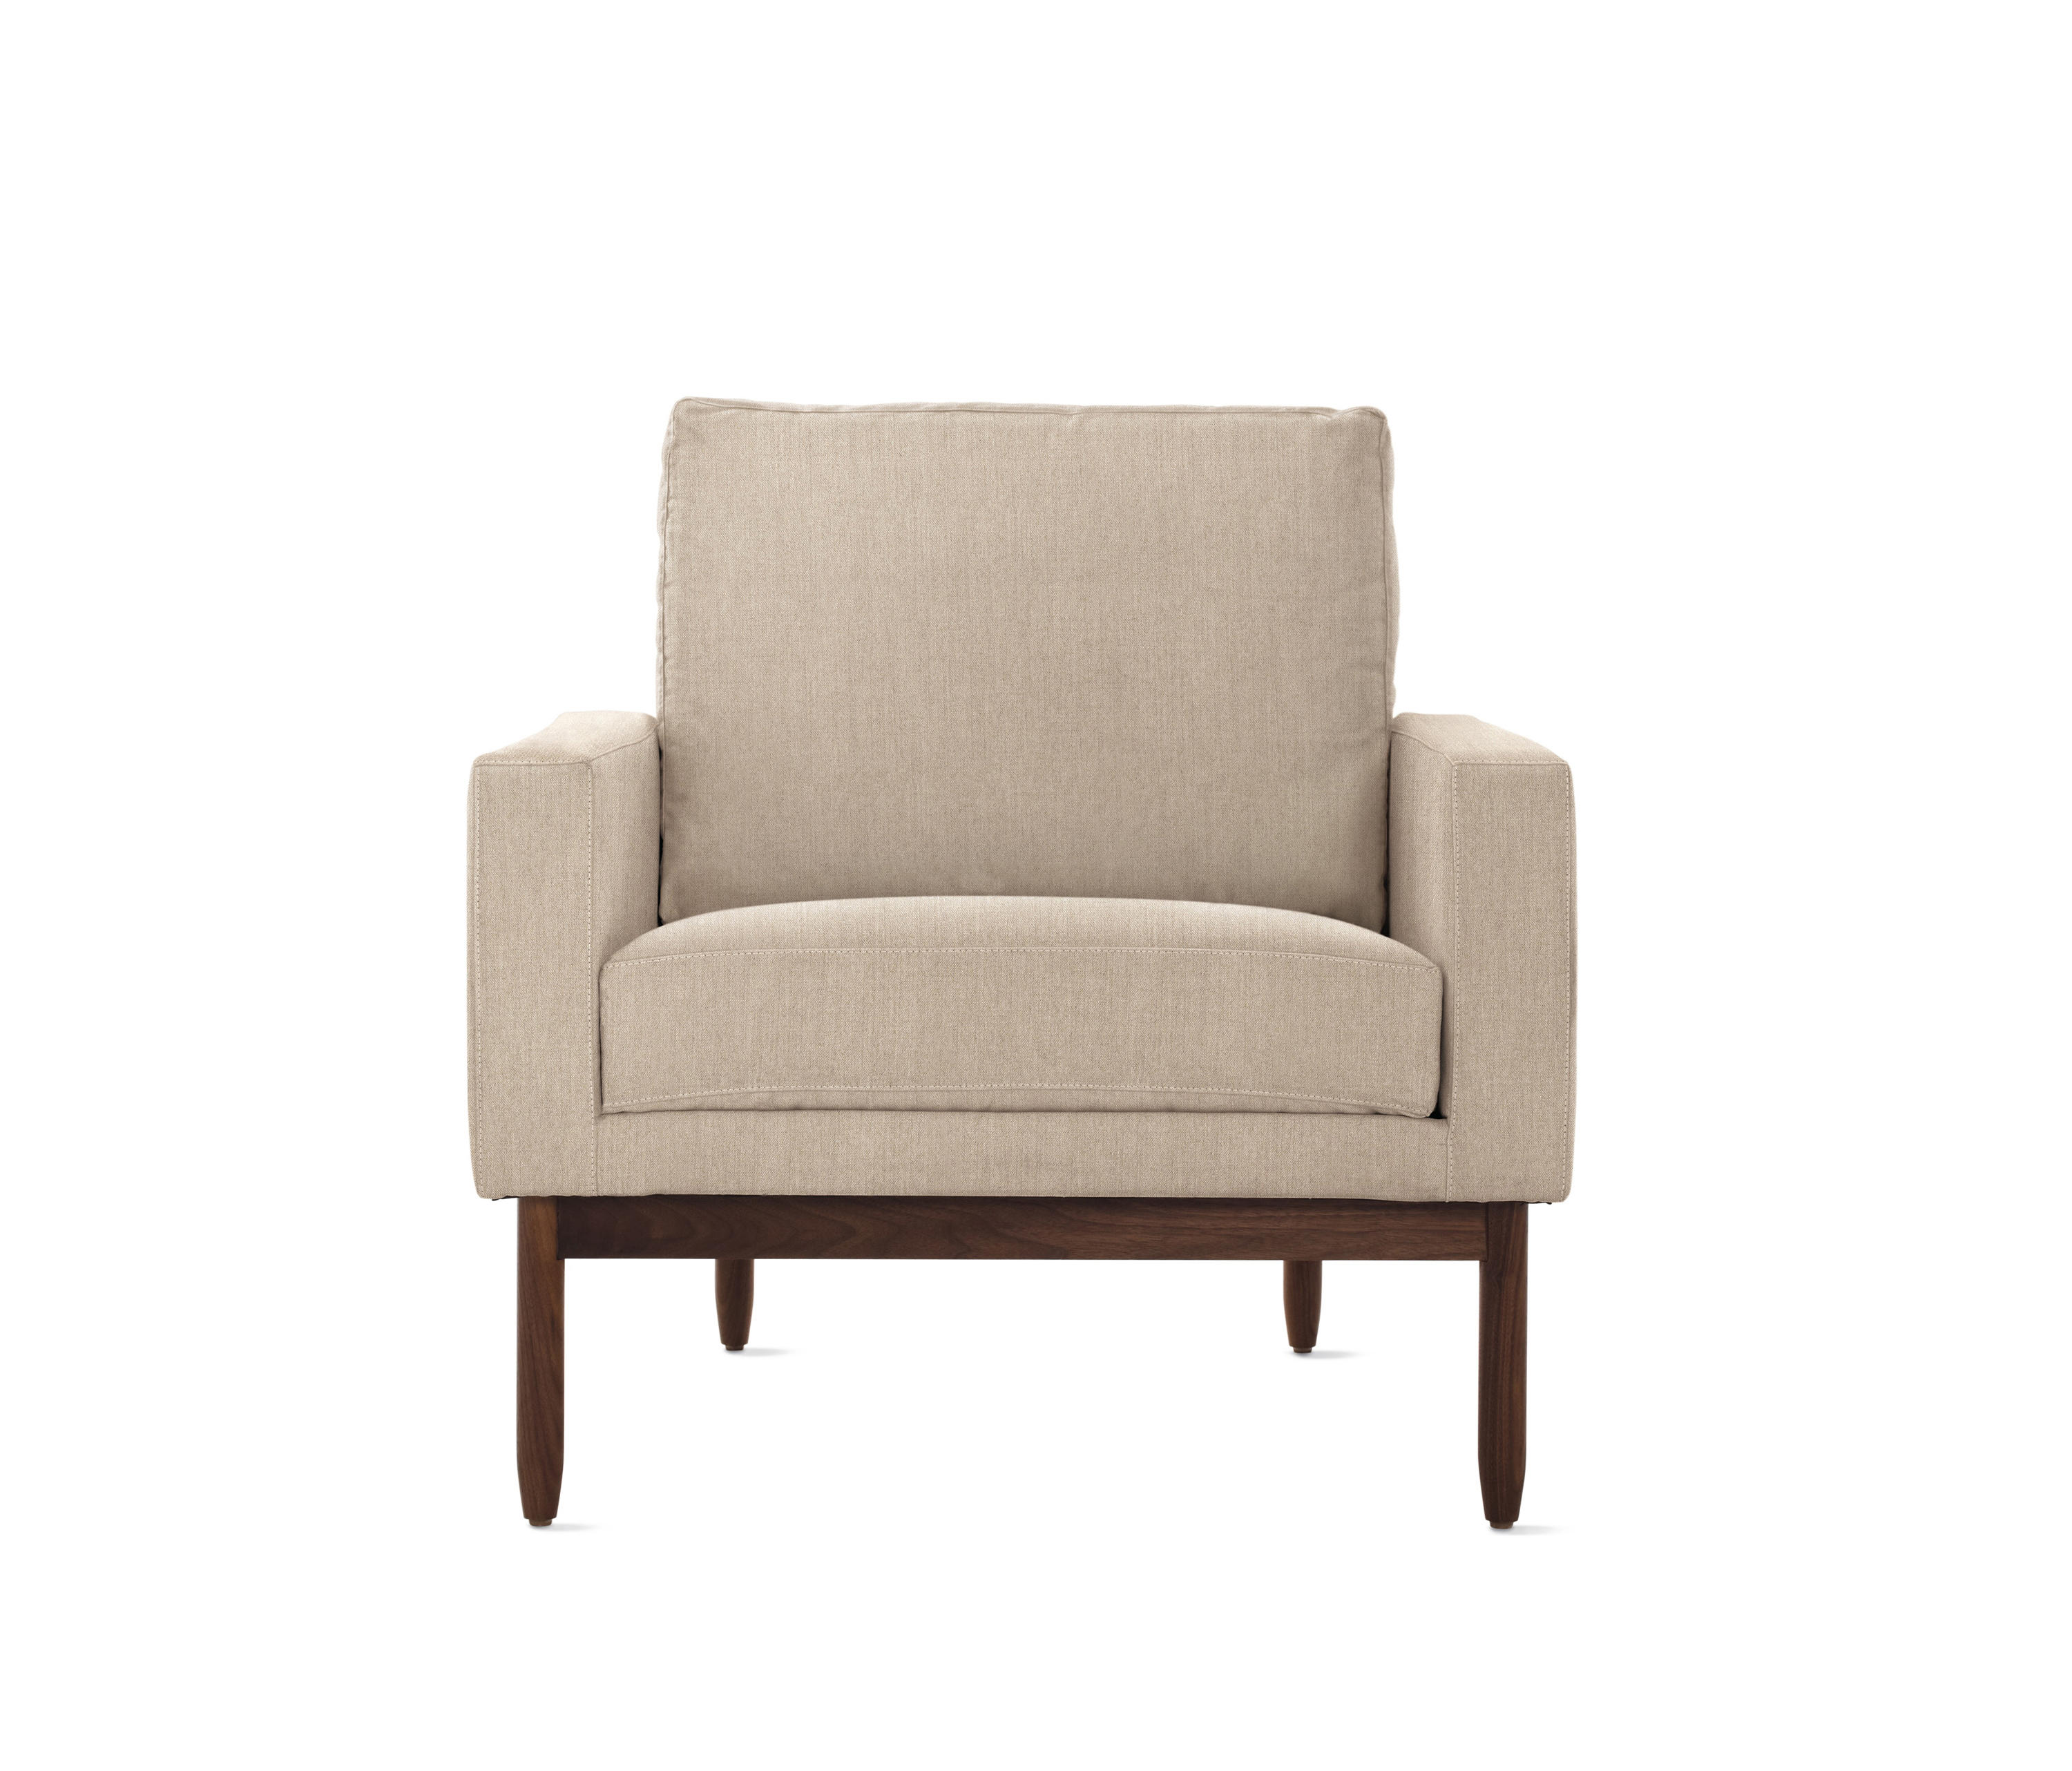 Raleigh Armchair In Fabric Armchairs From Design Within Reach